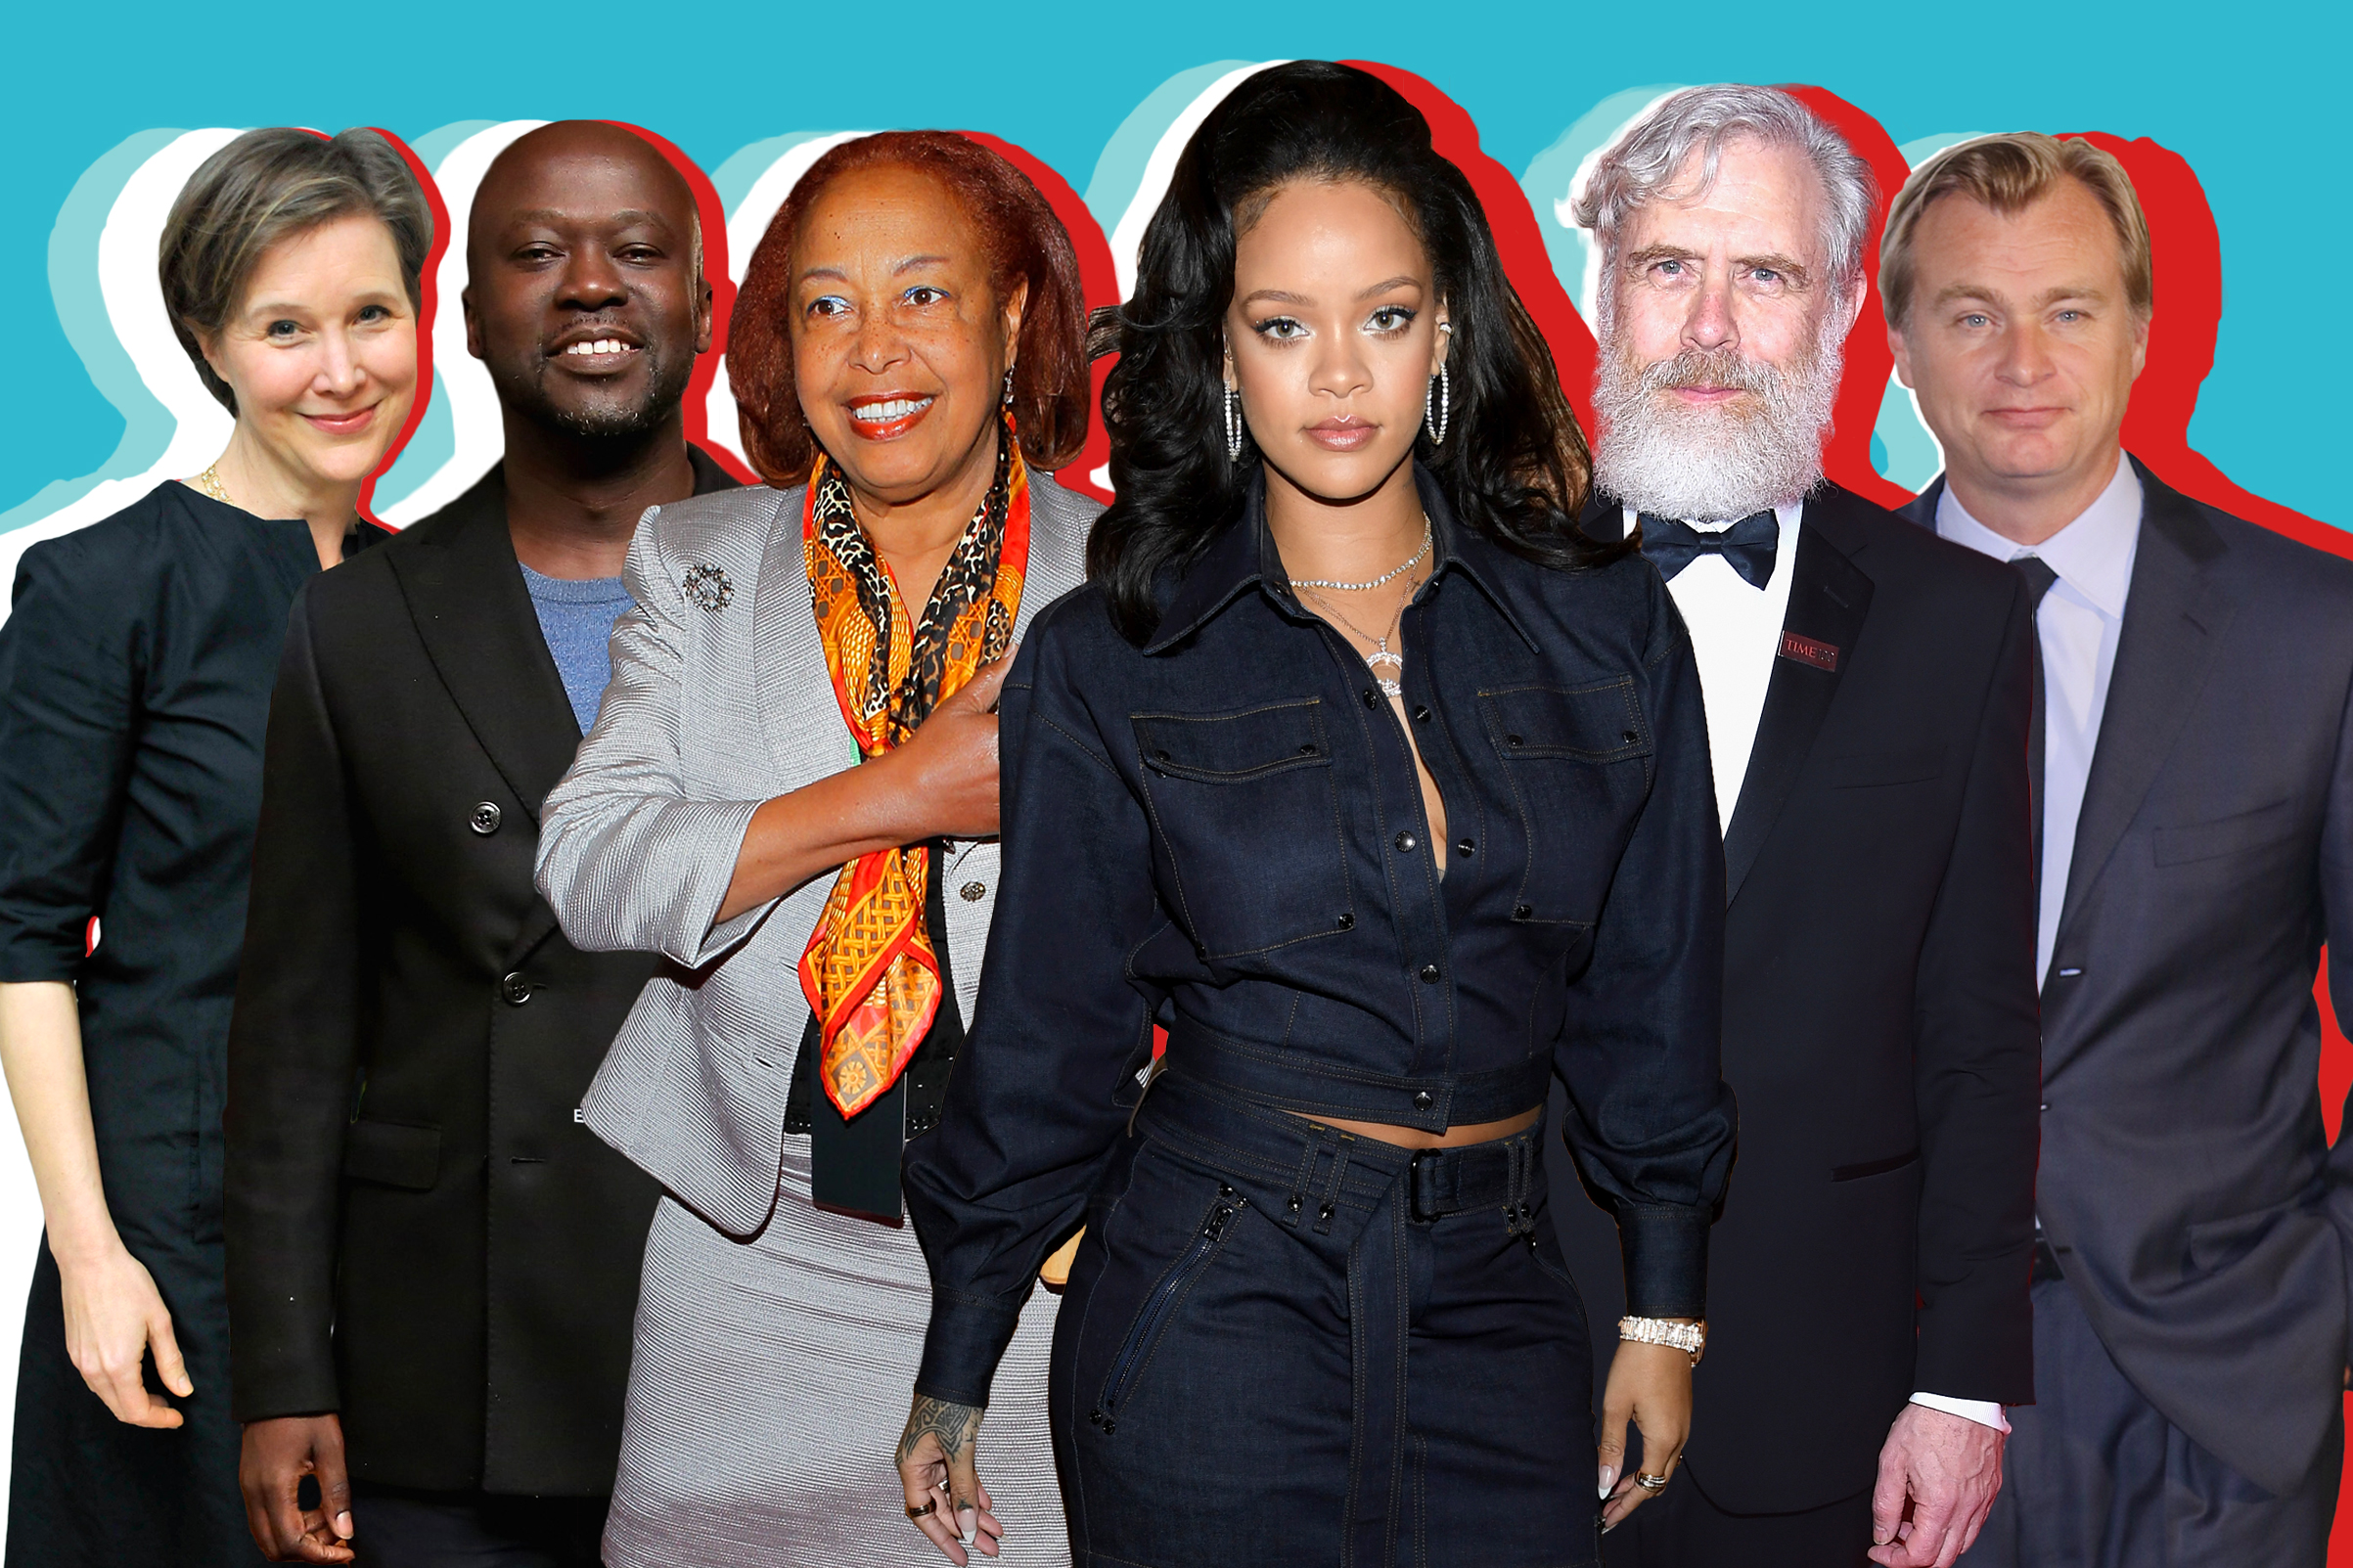 Ann Patchett, David Adjaye, Patricia Bath, Rihanna, George M. Church, and Christopher Nolan.